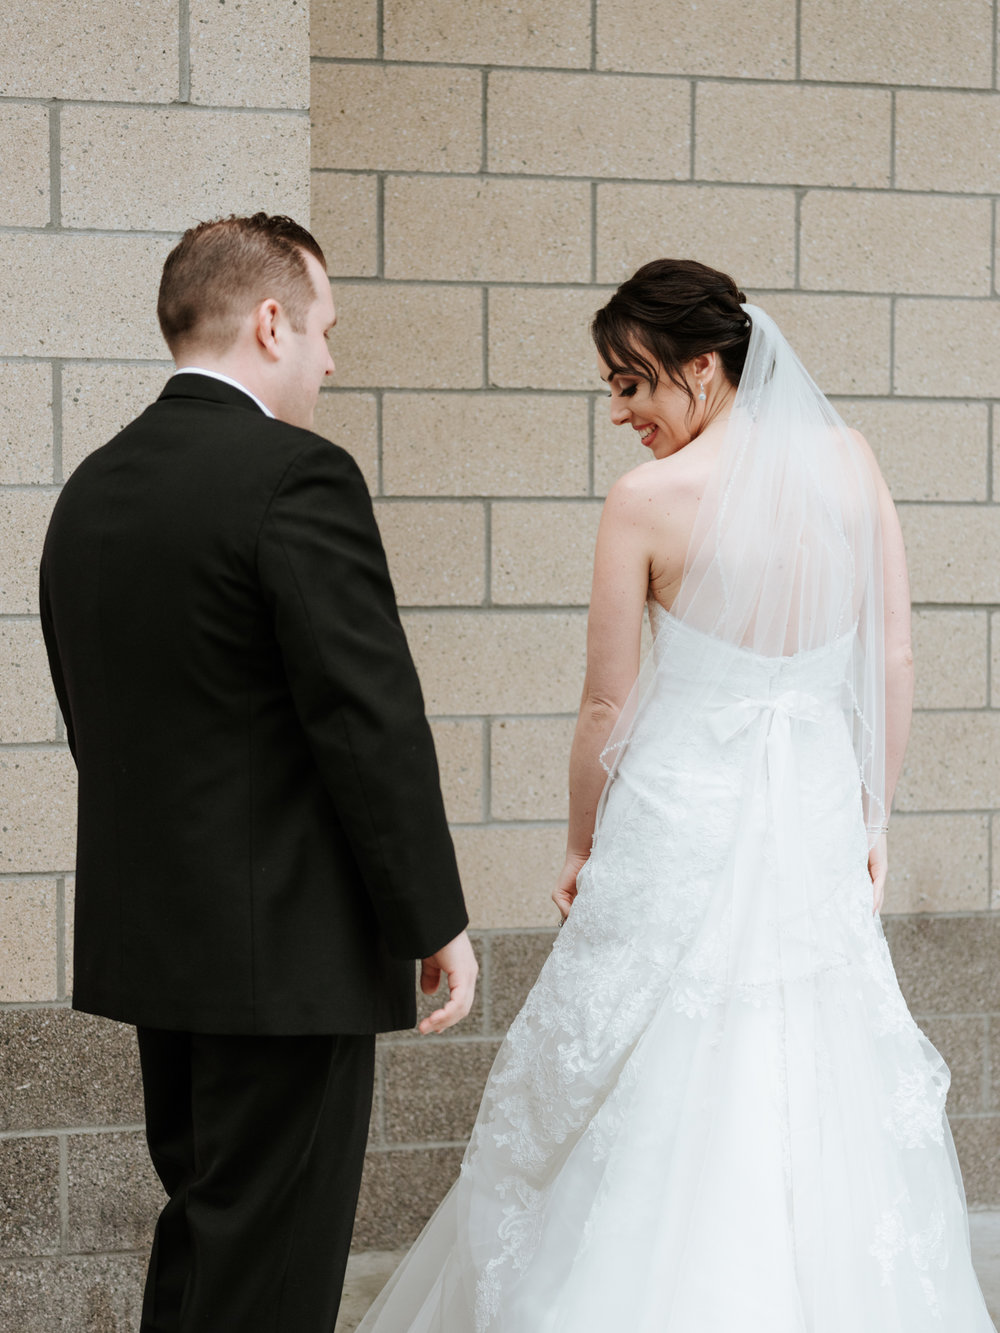 Stolen Glimpses Seattle Wedding Photographers 23.jpg